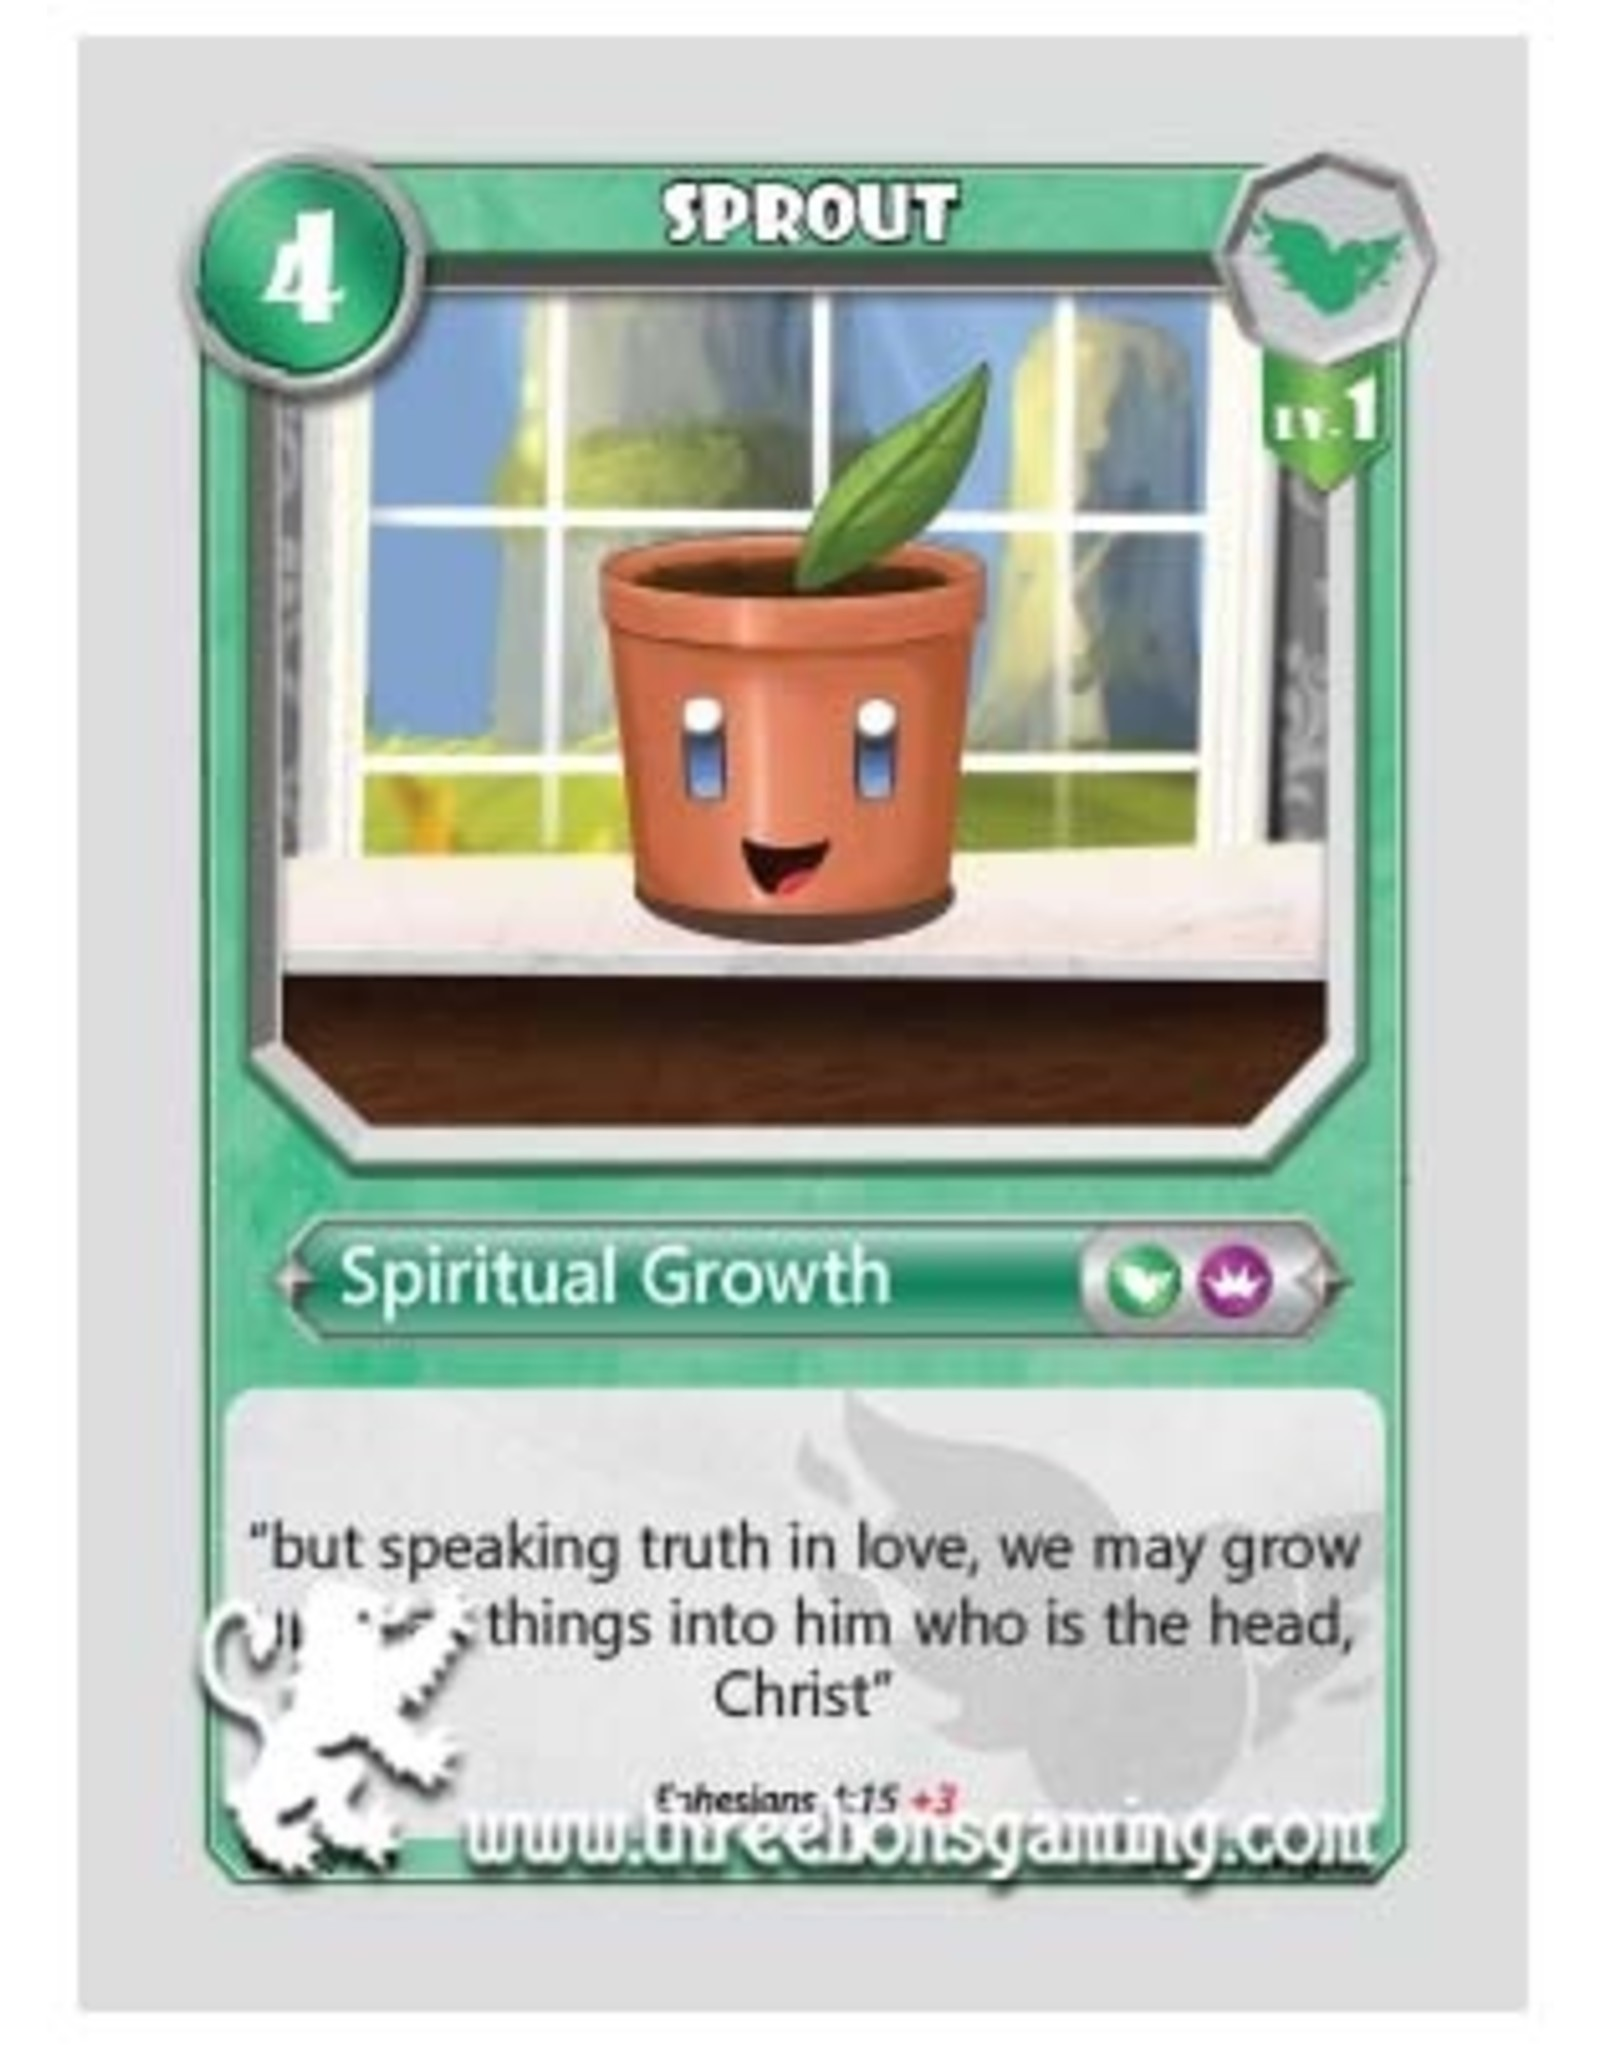 CT: Sprout